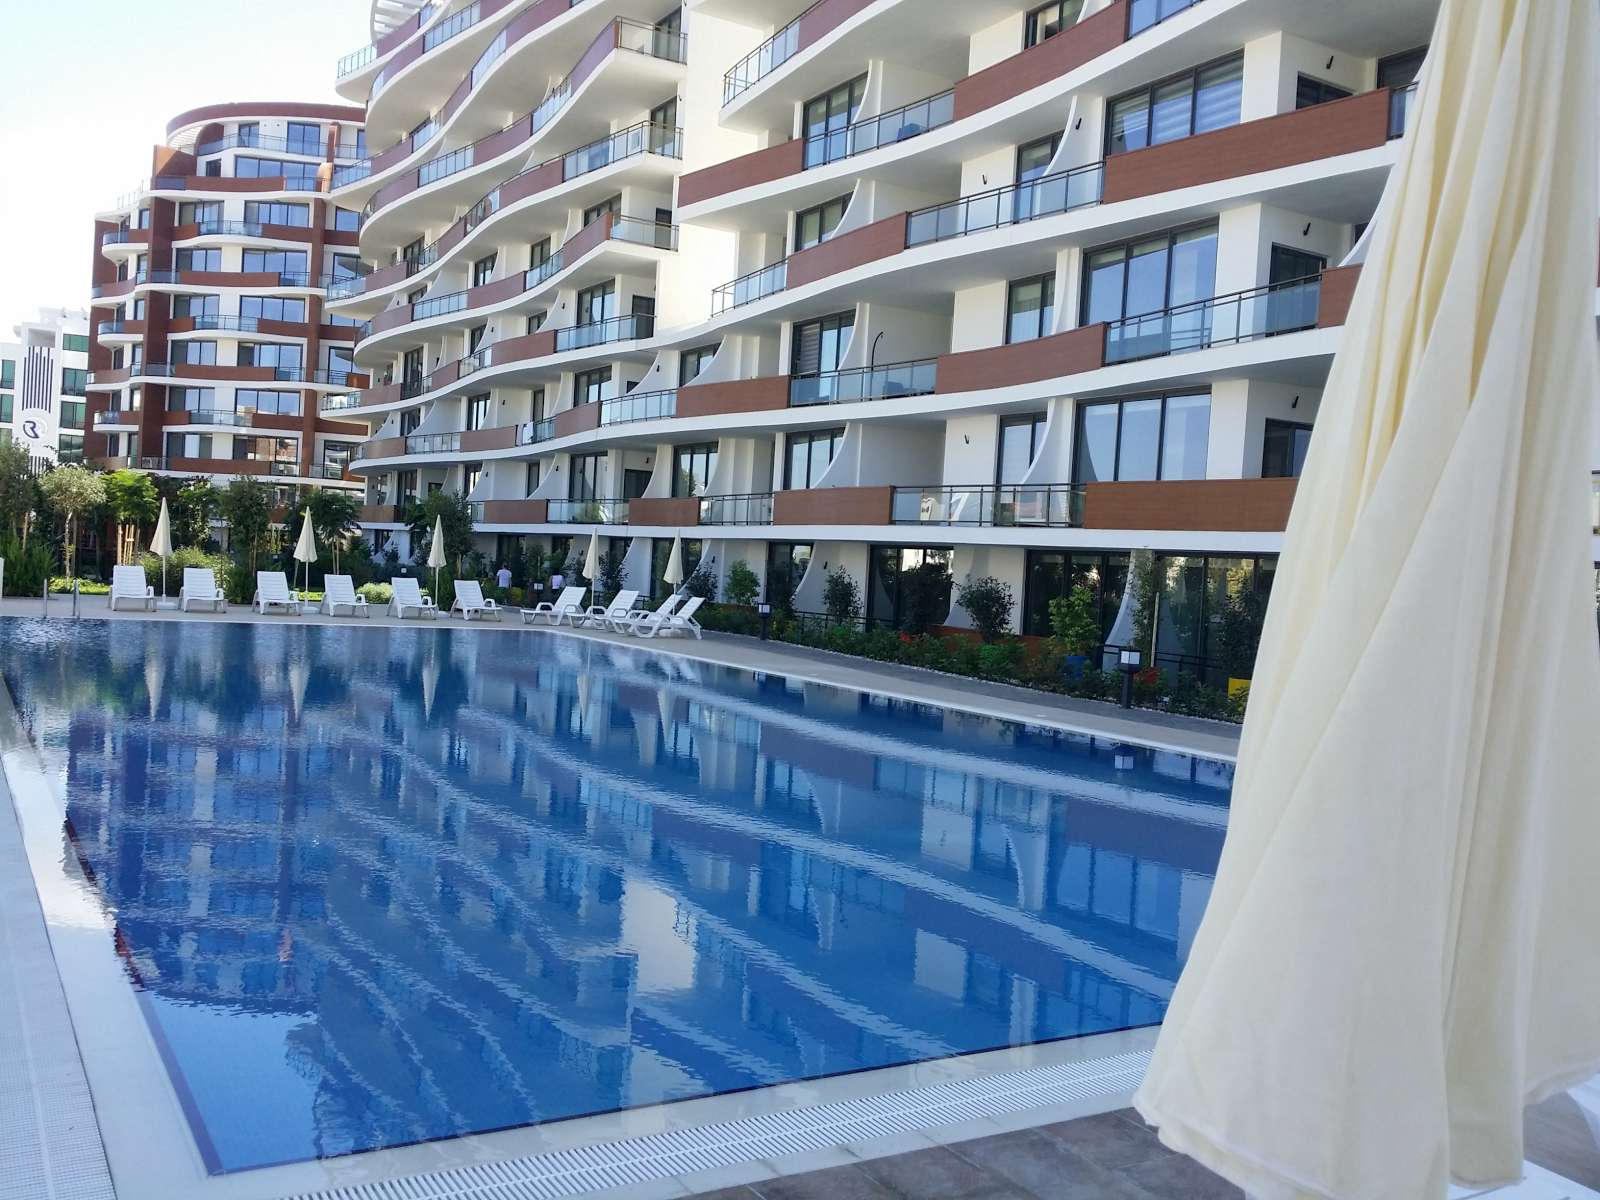 2-BEDROOM-FURNISHED-APARTMENT-FOR-RENT-IN-KYRENIA-R-KY14